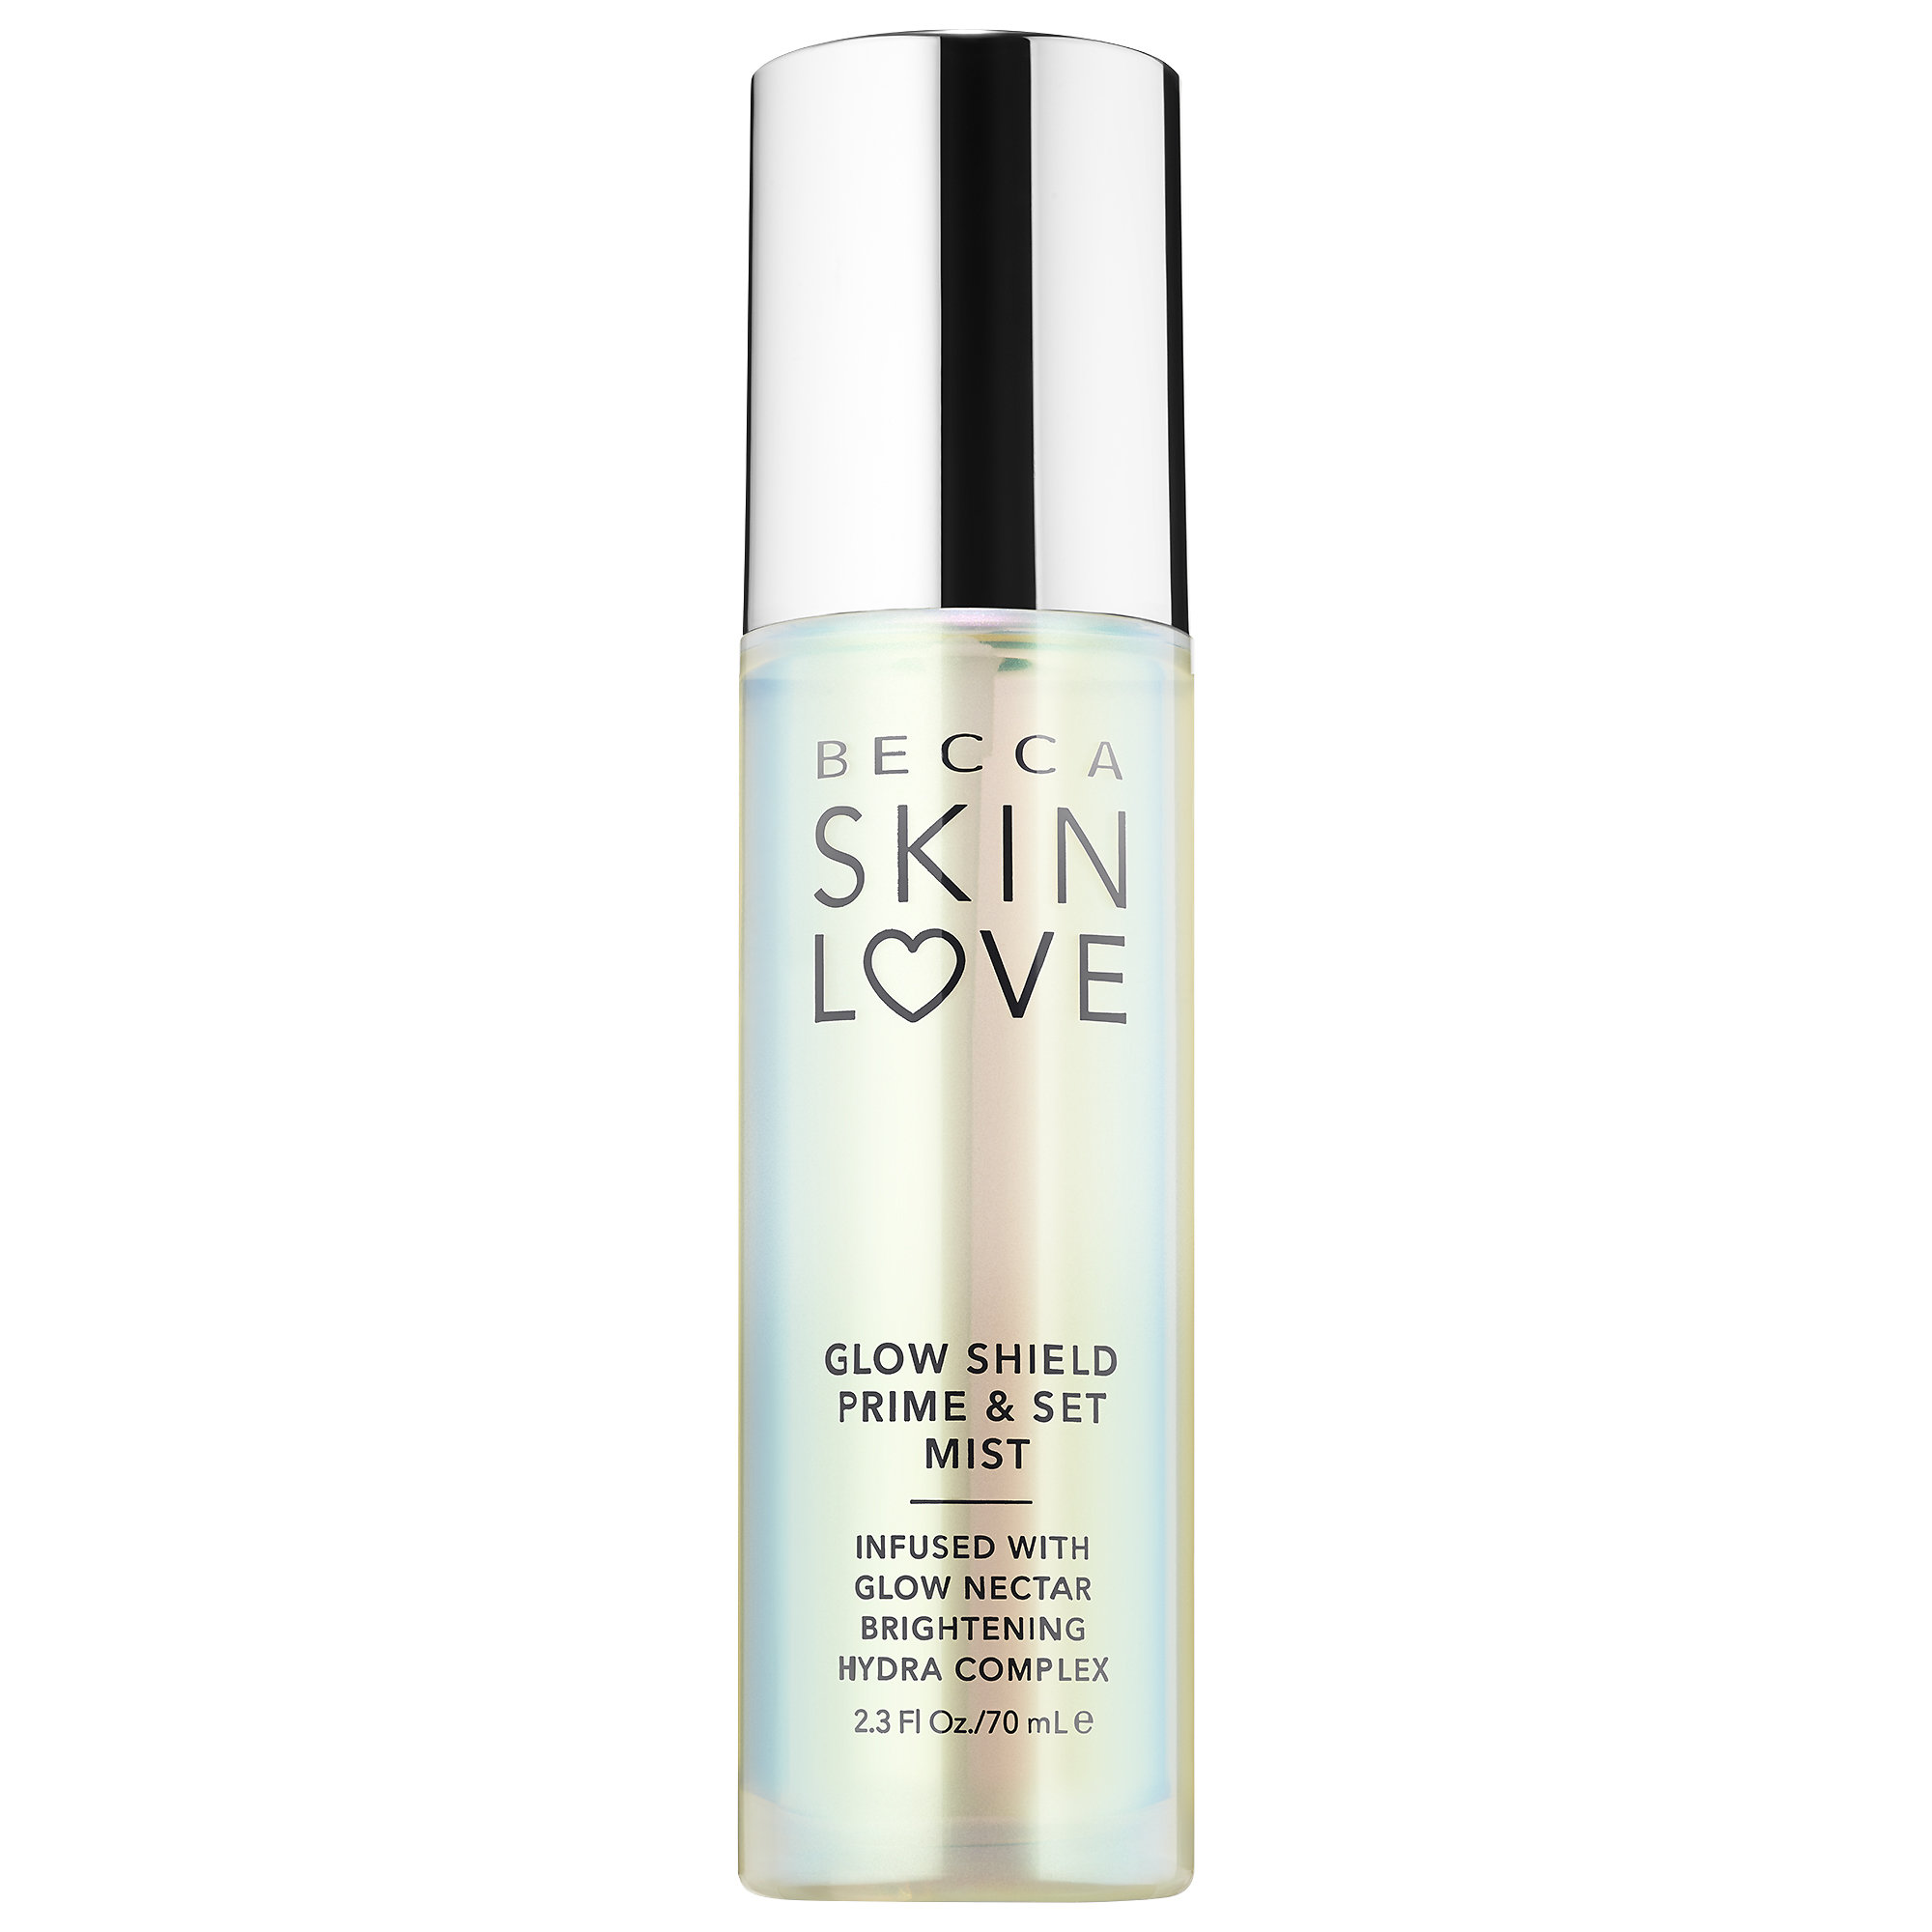 Becca - Skin Love Glow Shield Prime & Set Mist